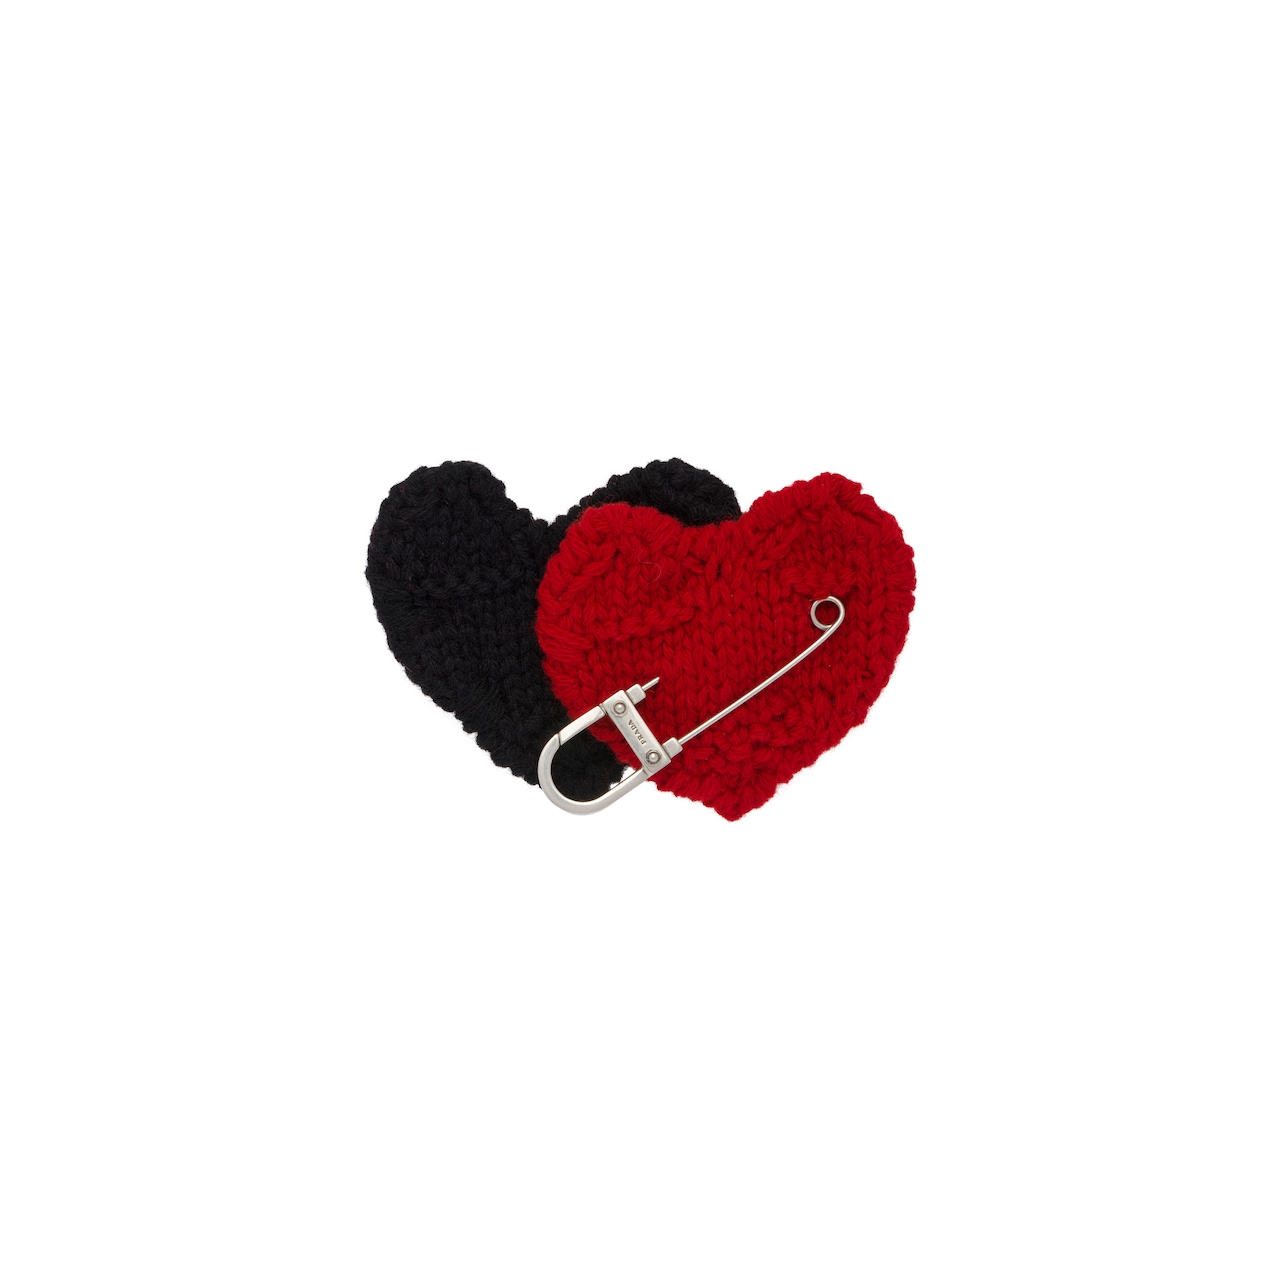 Safety pin with heart